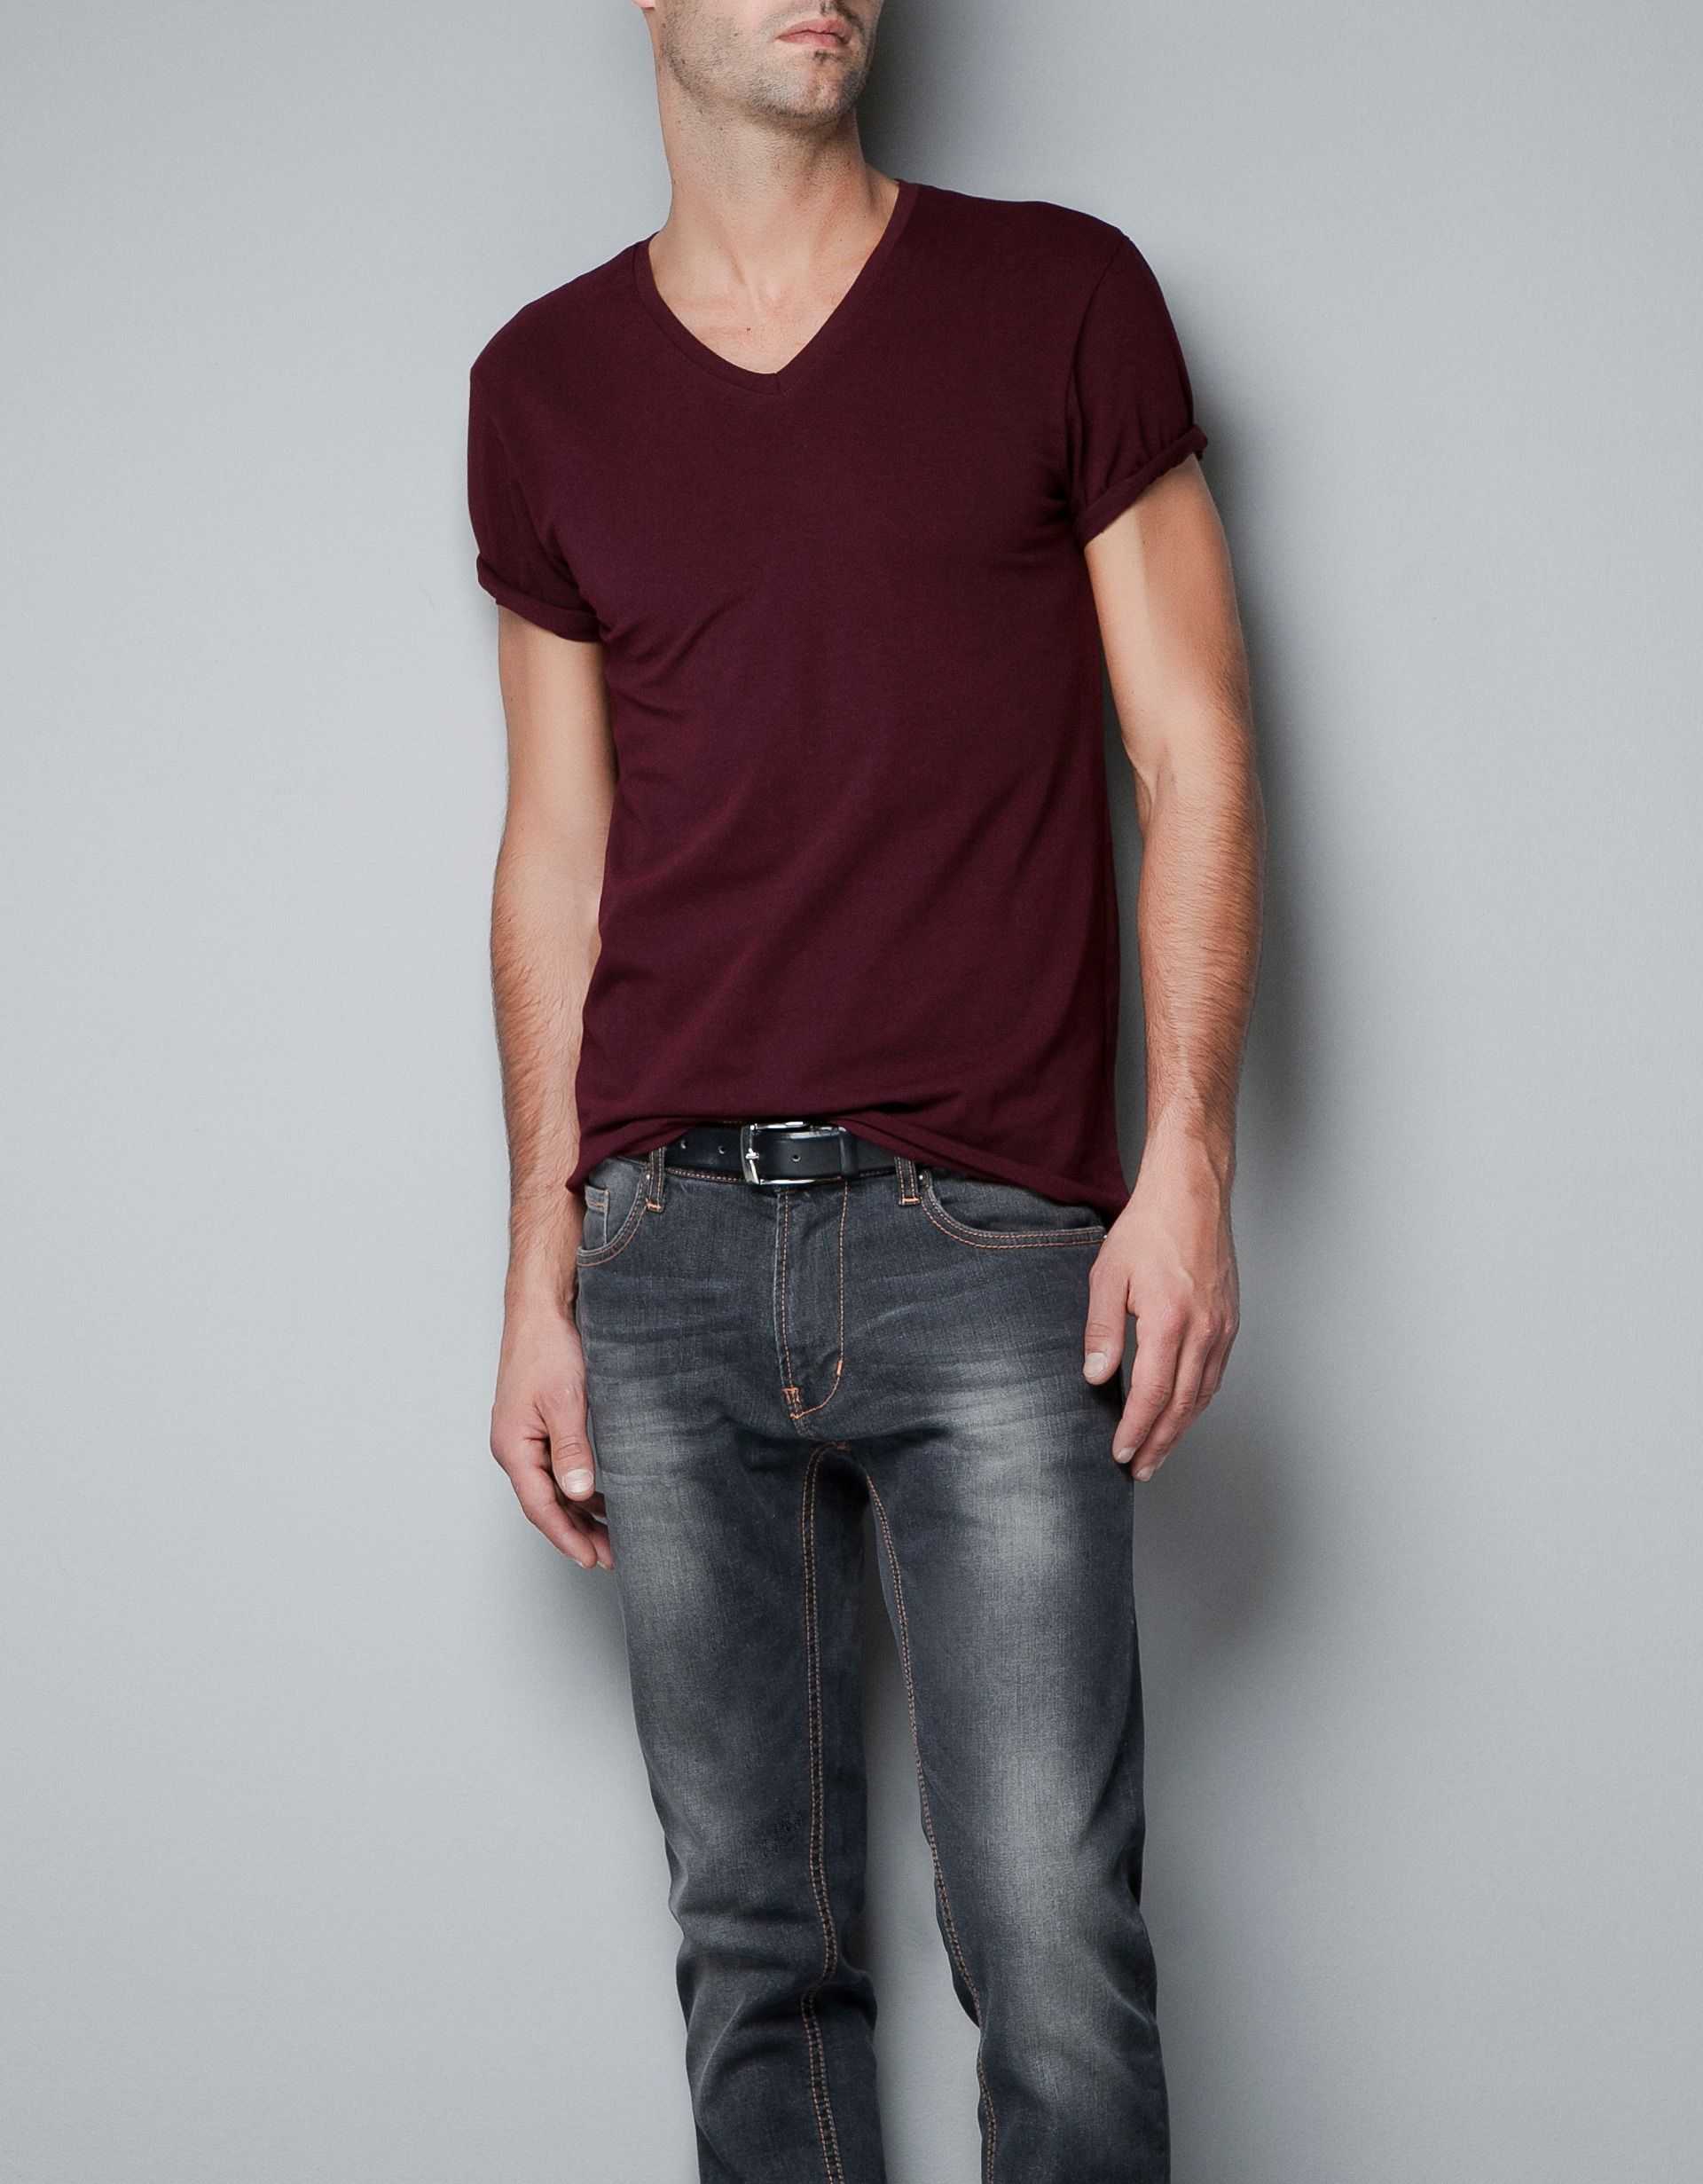 Zara Super Slim Fit T Shirt In Red For Men Maroon Lyst